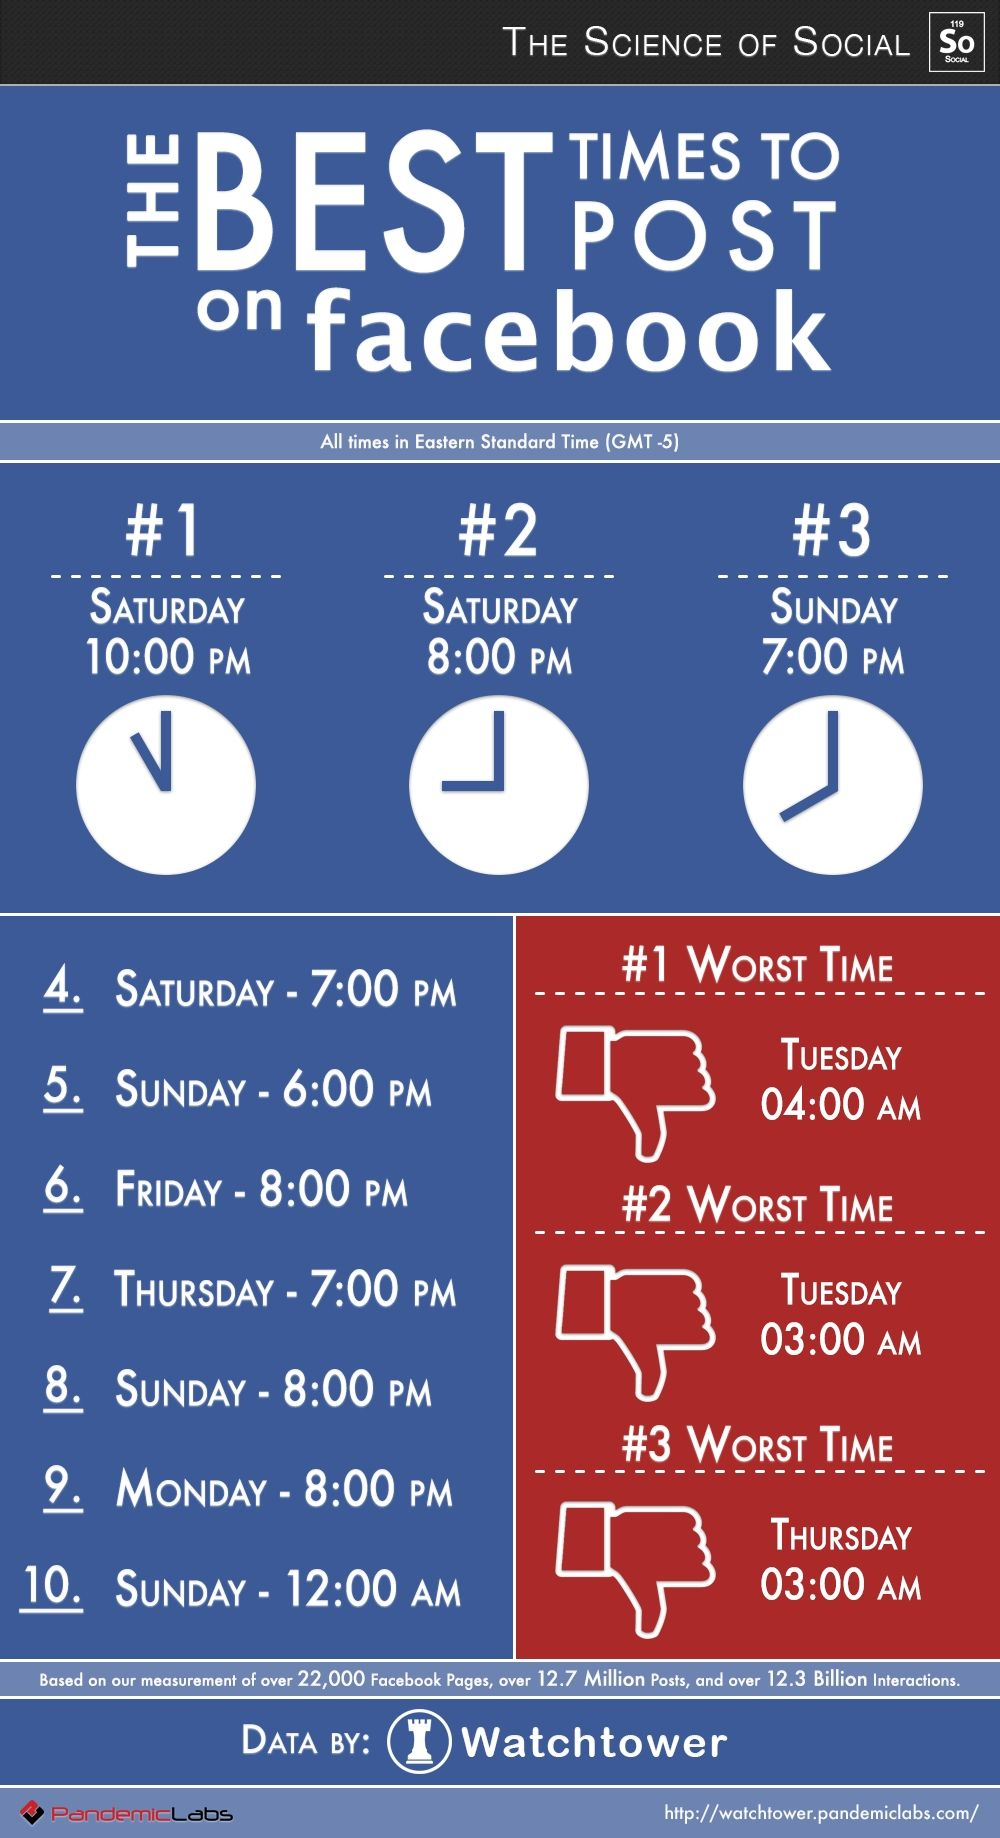 infographic: pandemic labs' take on best days, times of day for